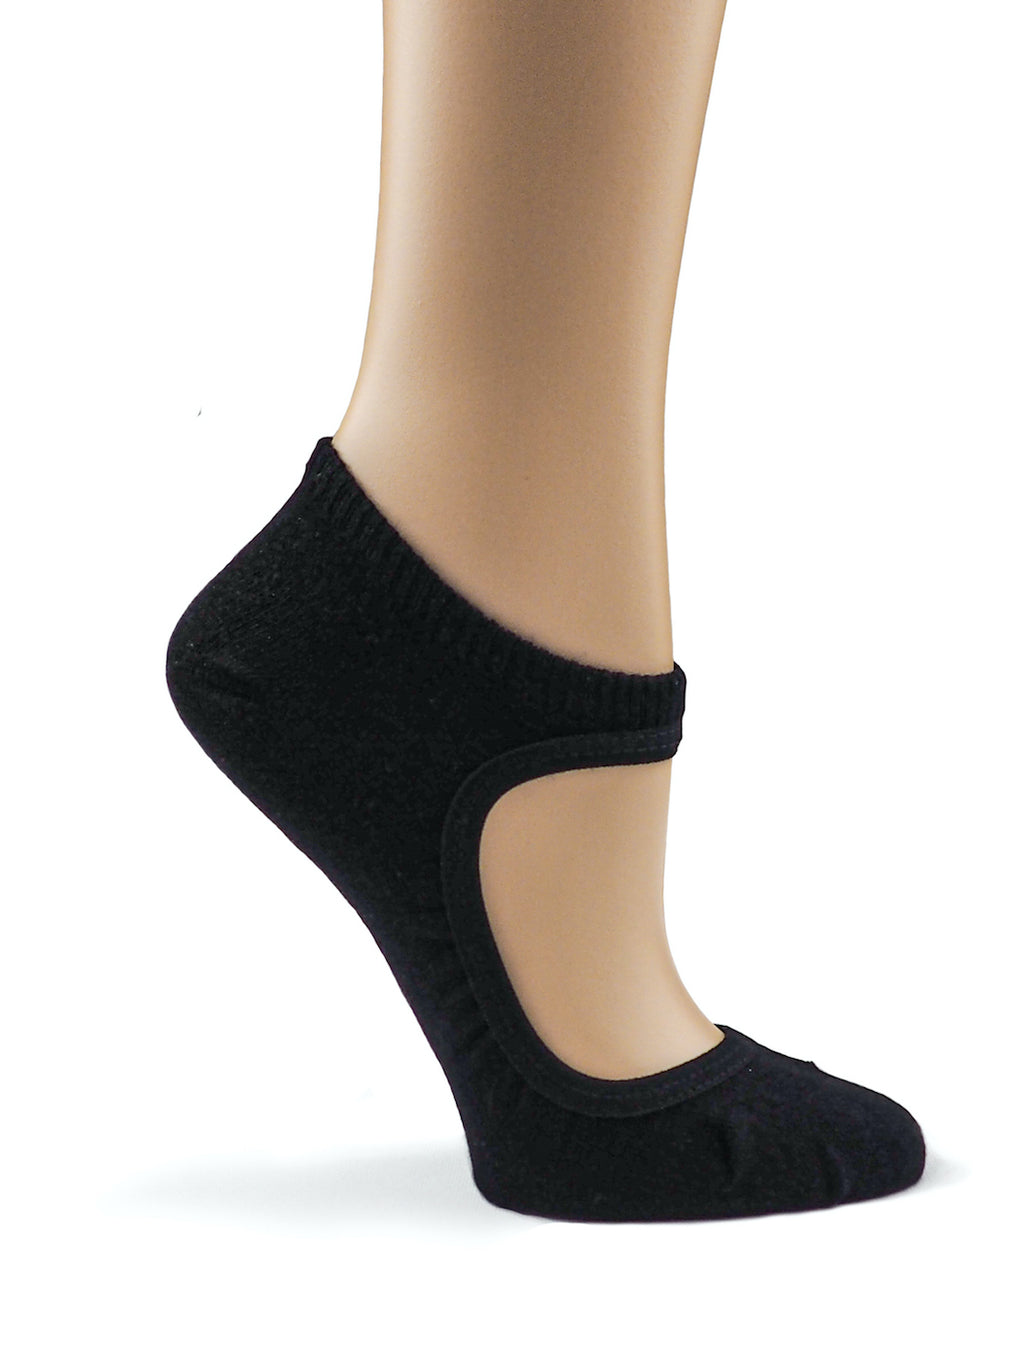 Fashion Ballet Socks | Love Classic